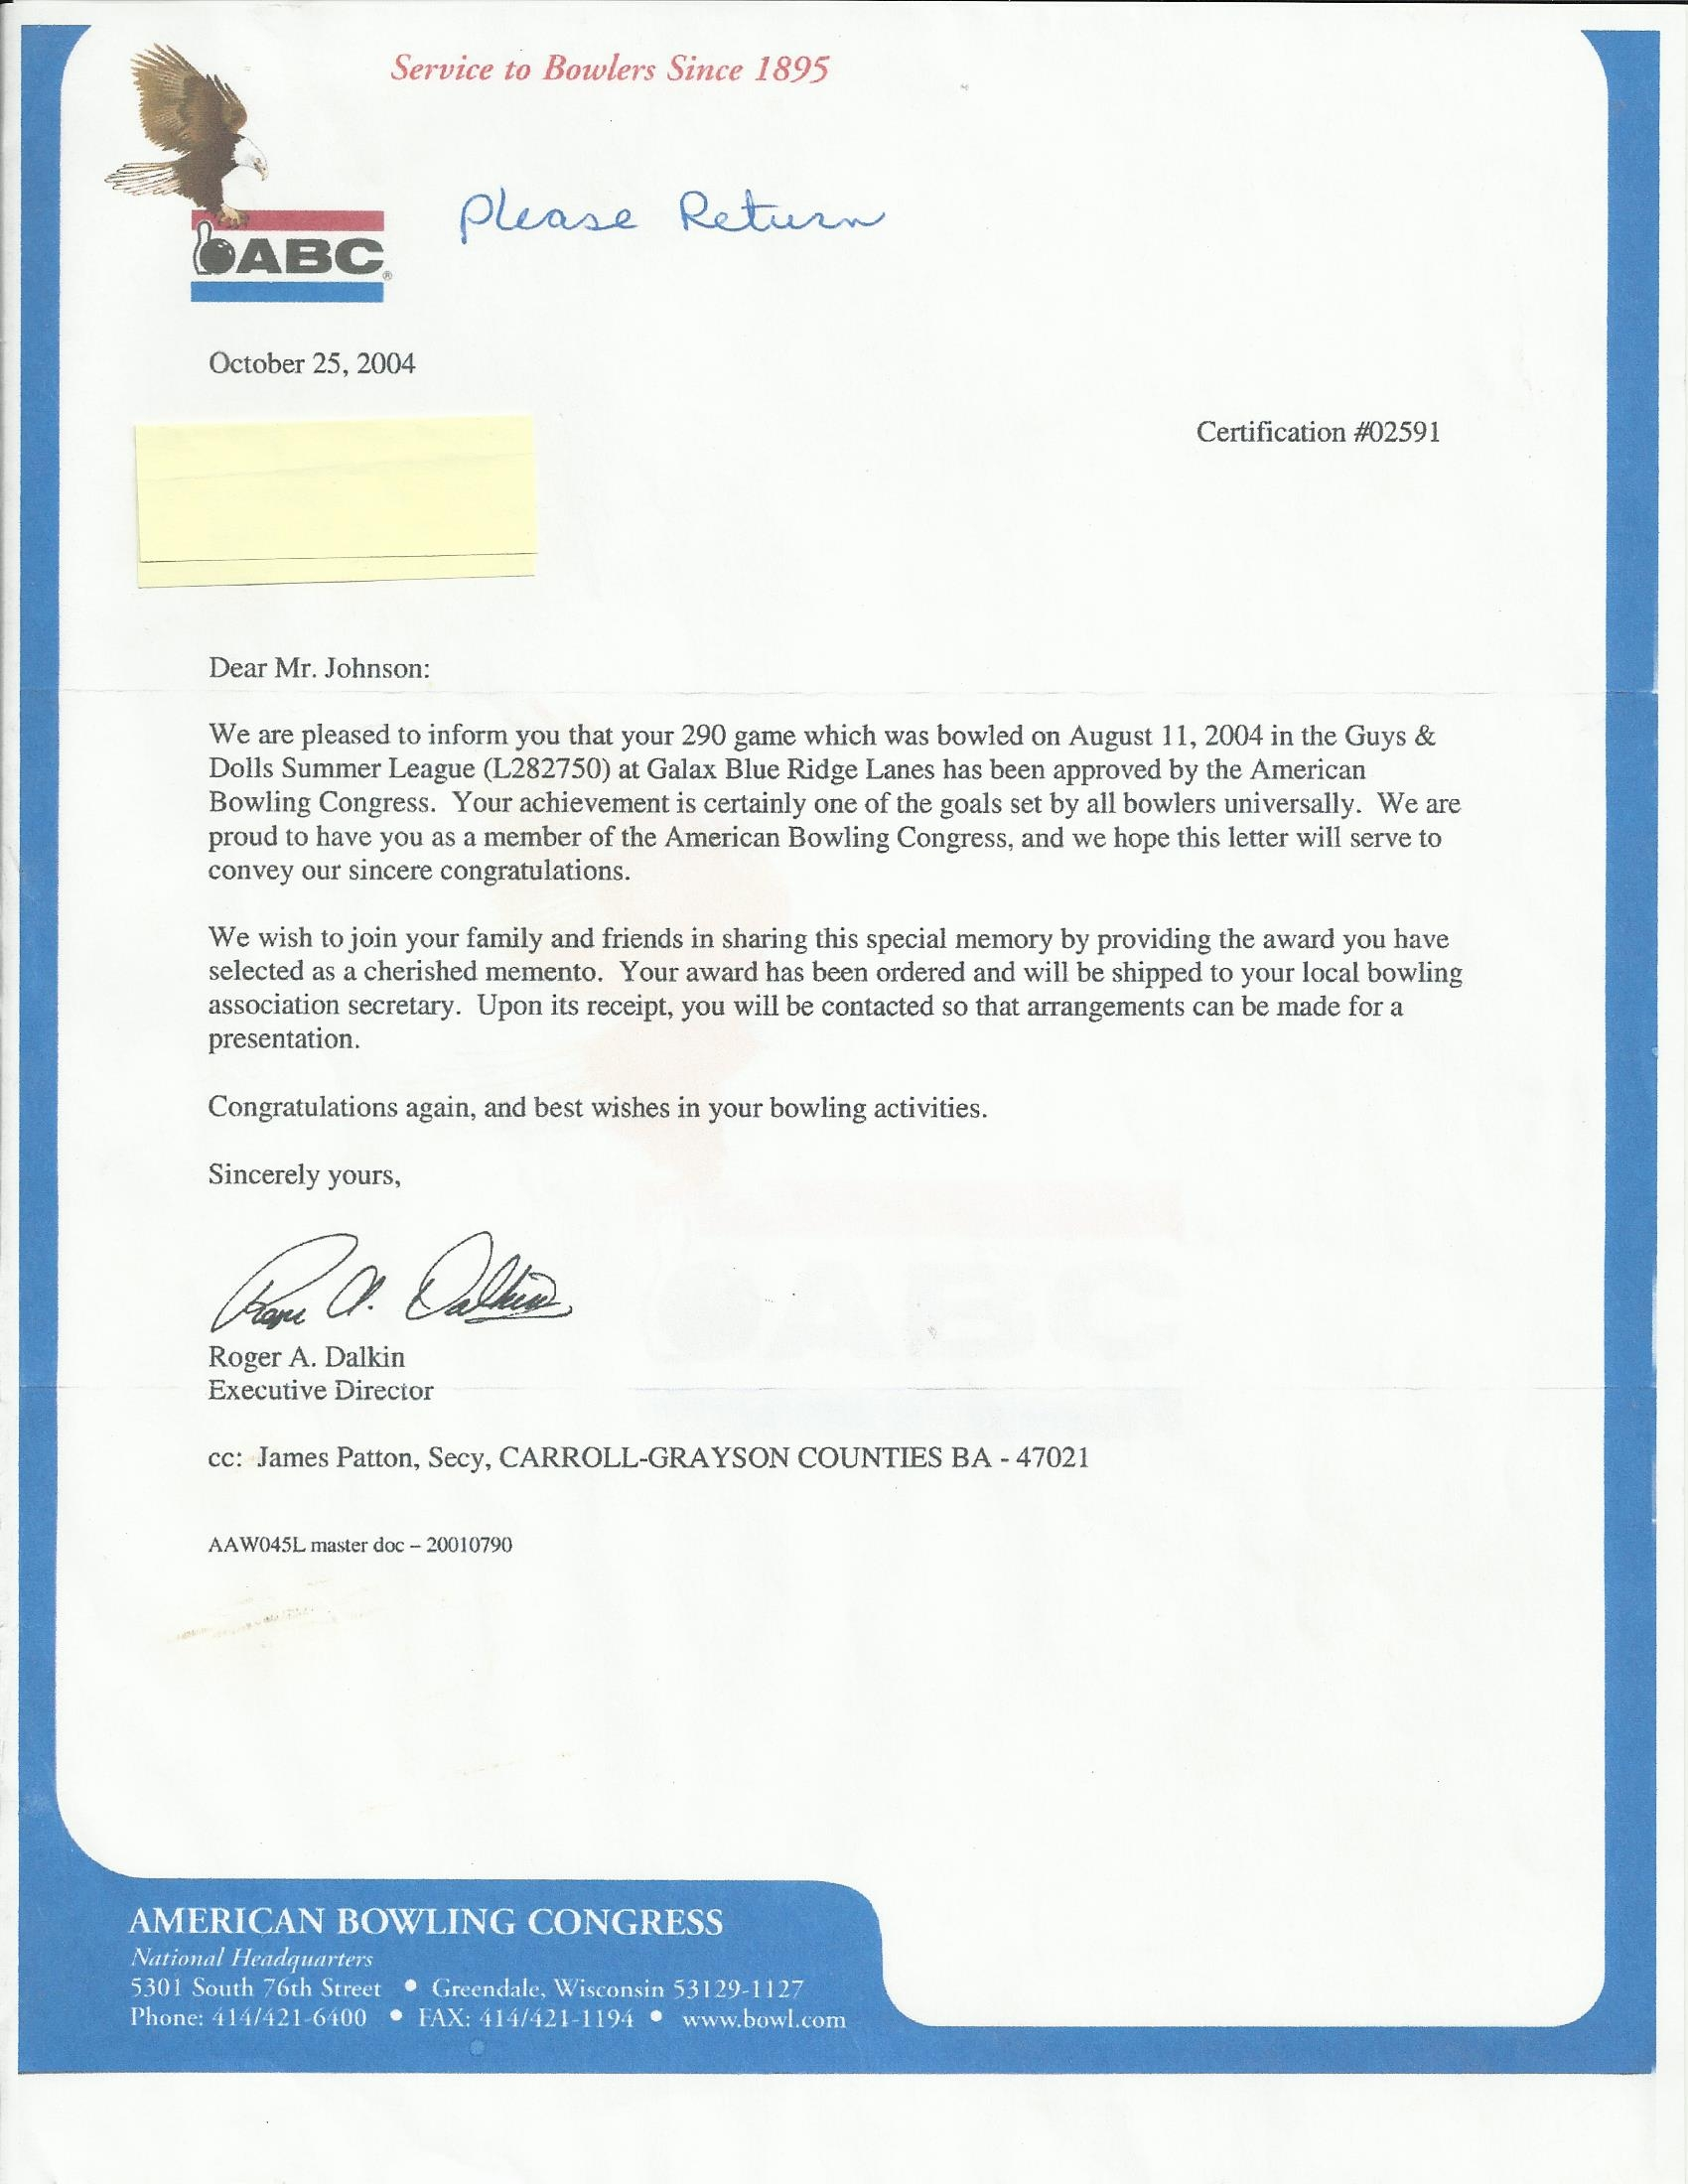 bowling ABC american bowling congress certification letter